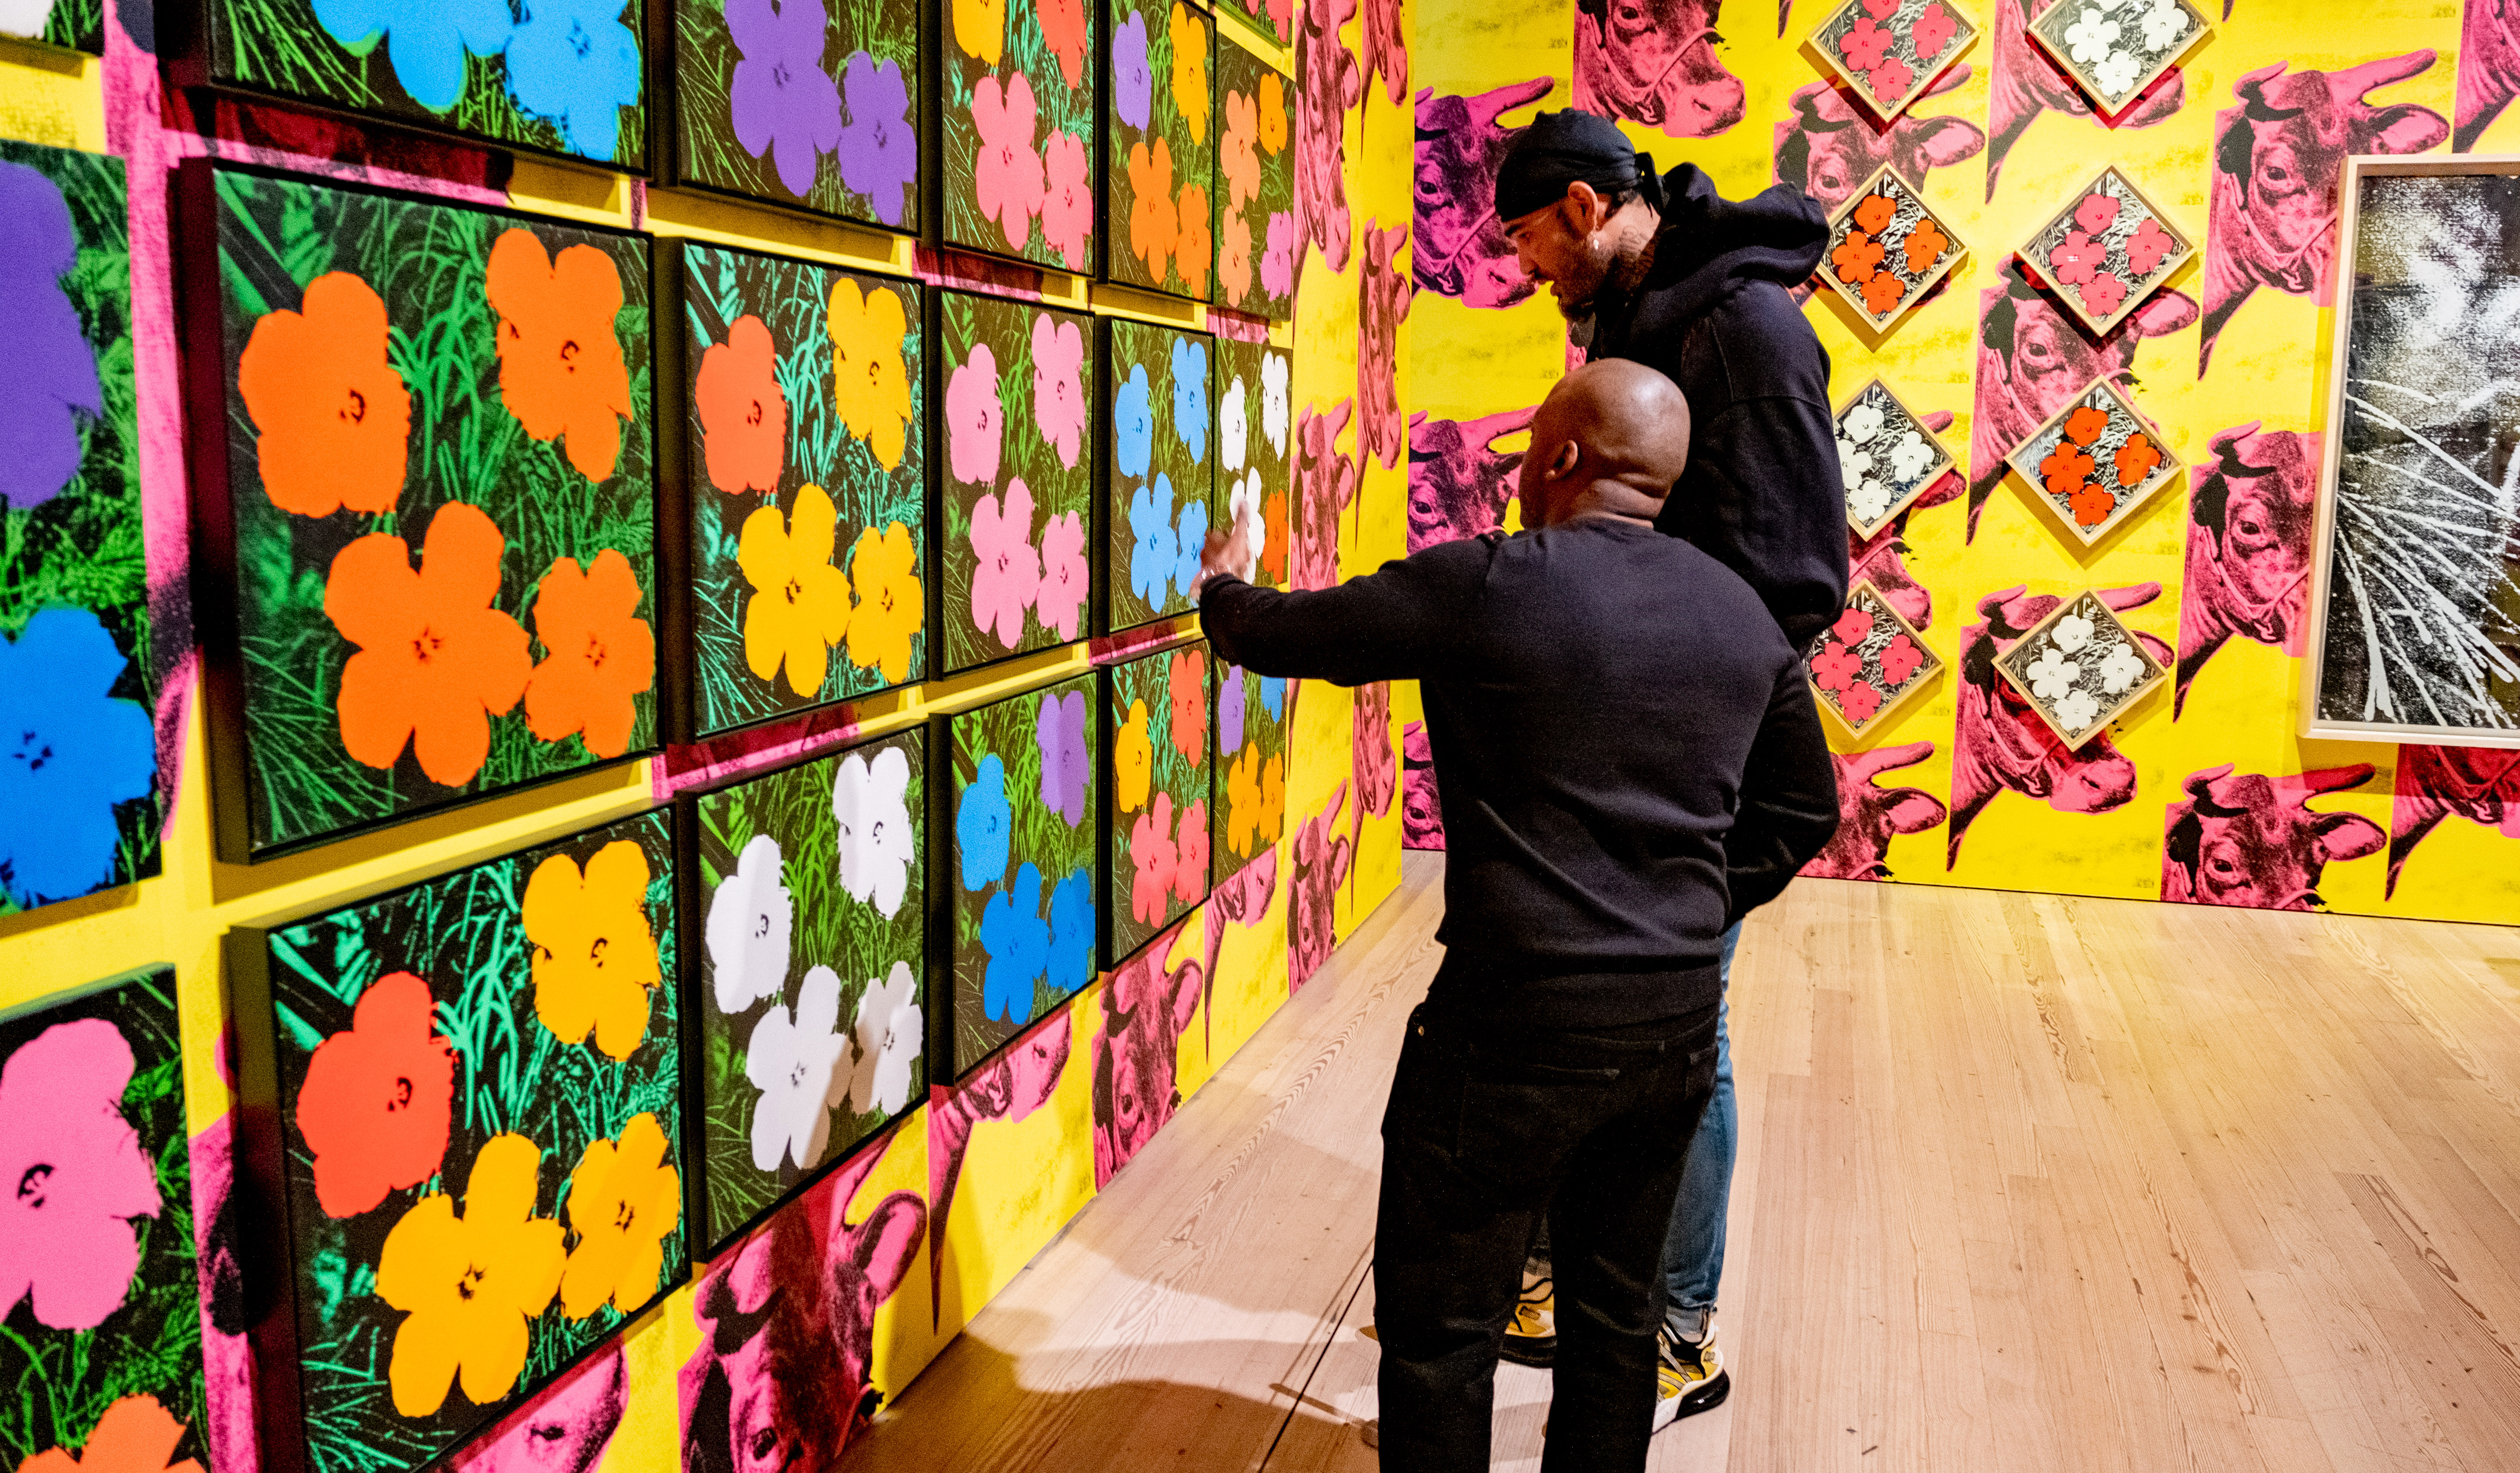 New York-based art adviser and collector Gardy St. Fleur guides Sacramento Kings center Willie Cauley-Stein through The Whitney Museum of American Art during a visit.